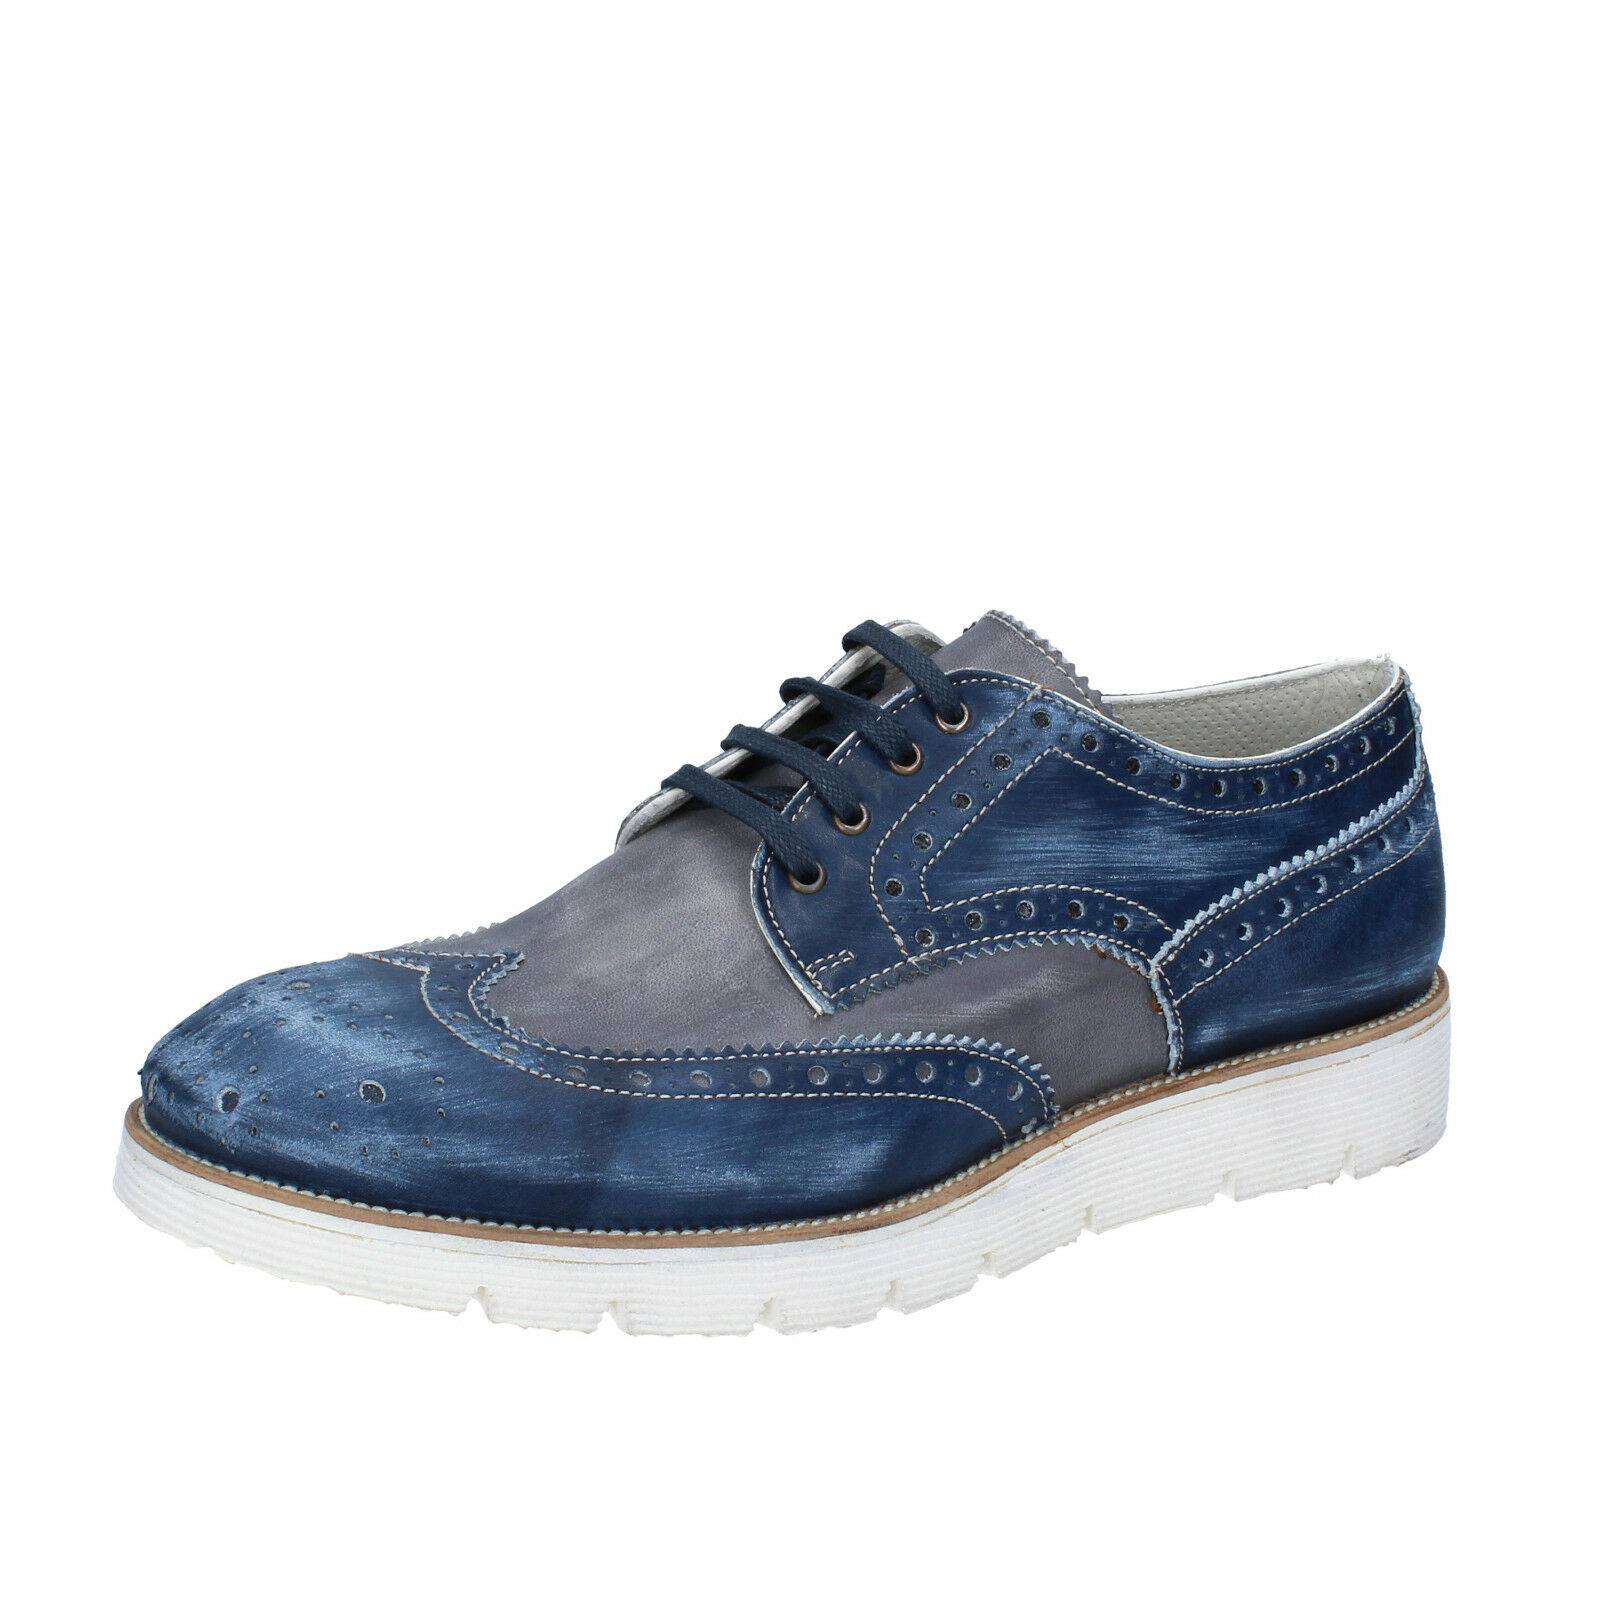 Mens shoes +2 MADE IN ITALY 6 () elegant bluee grey leather BZ455-40